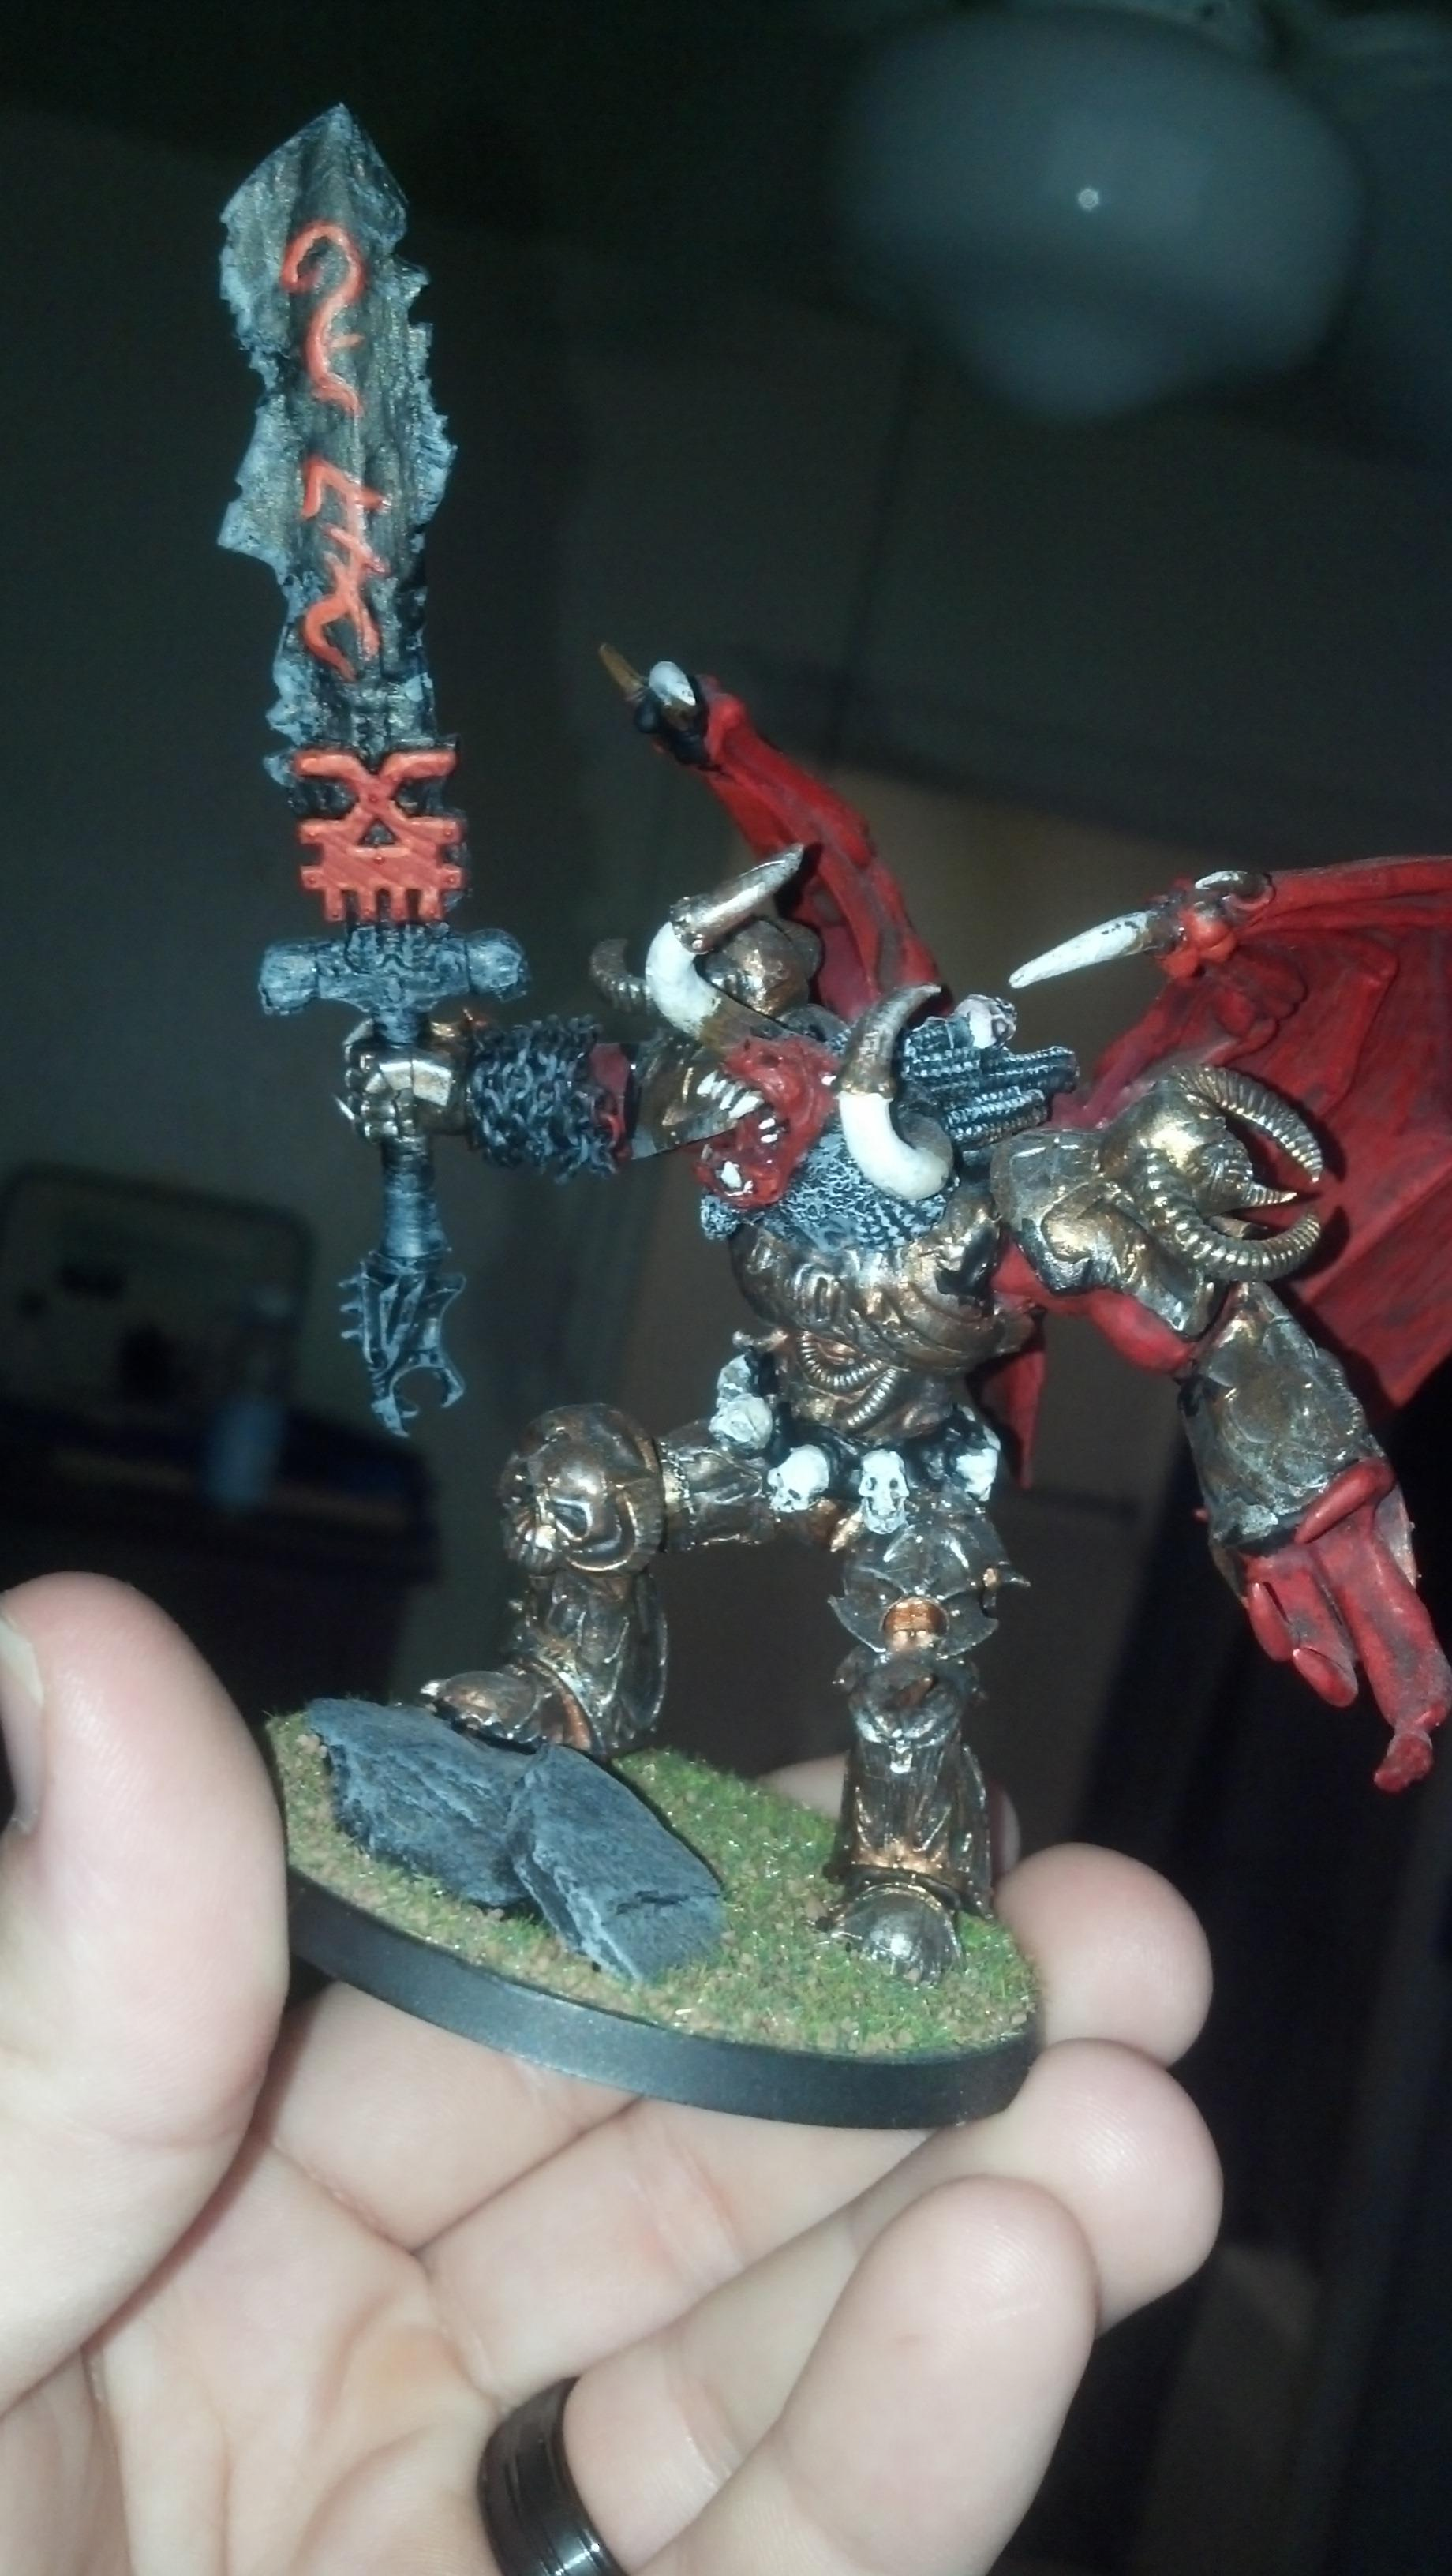 Daemons, dok demon prince, also use as Angron in apoc